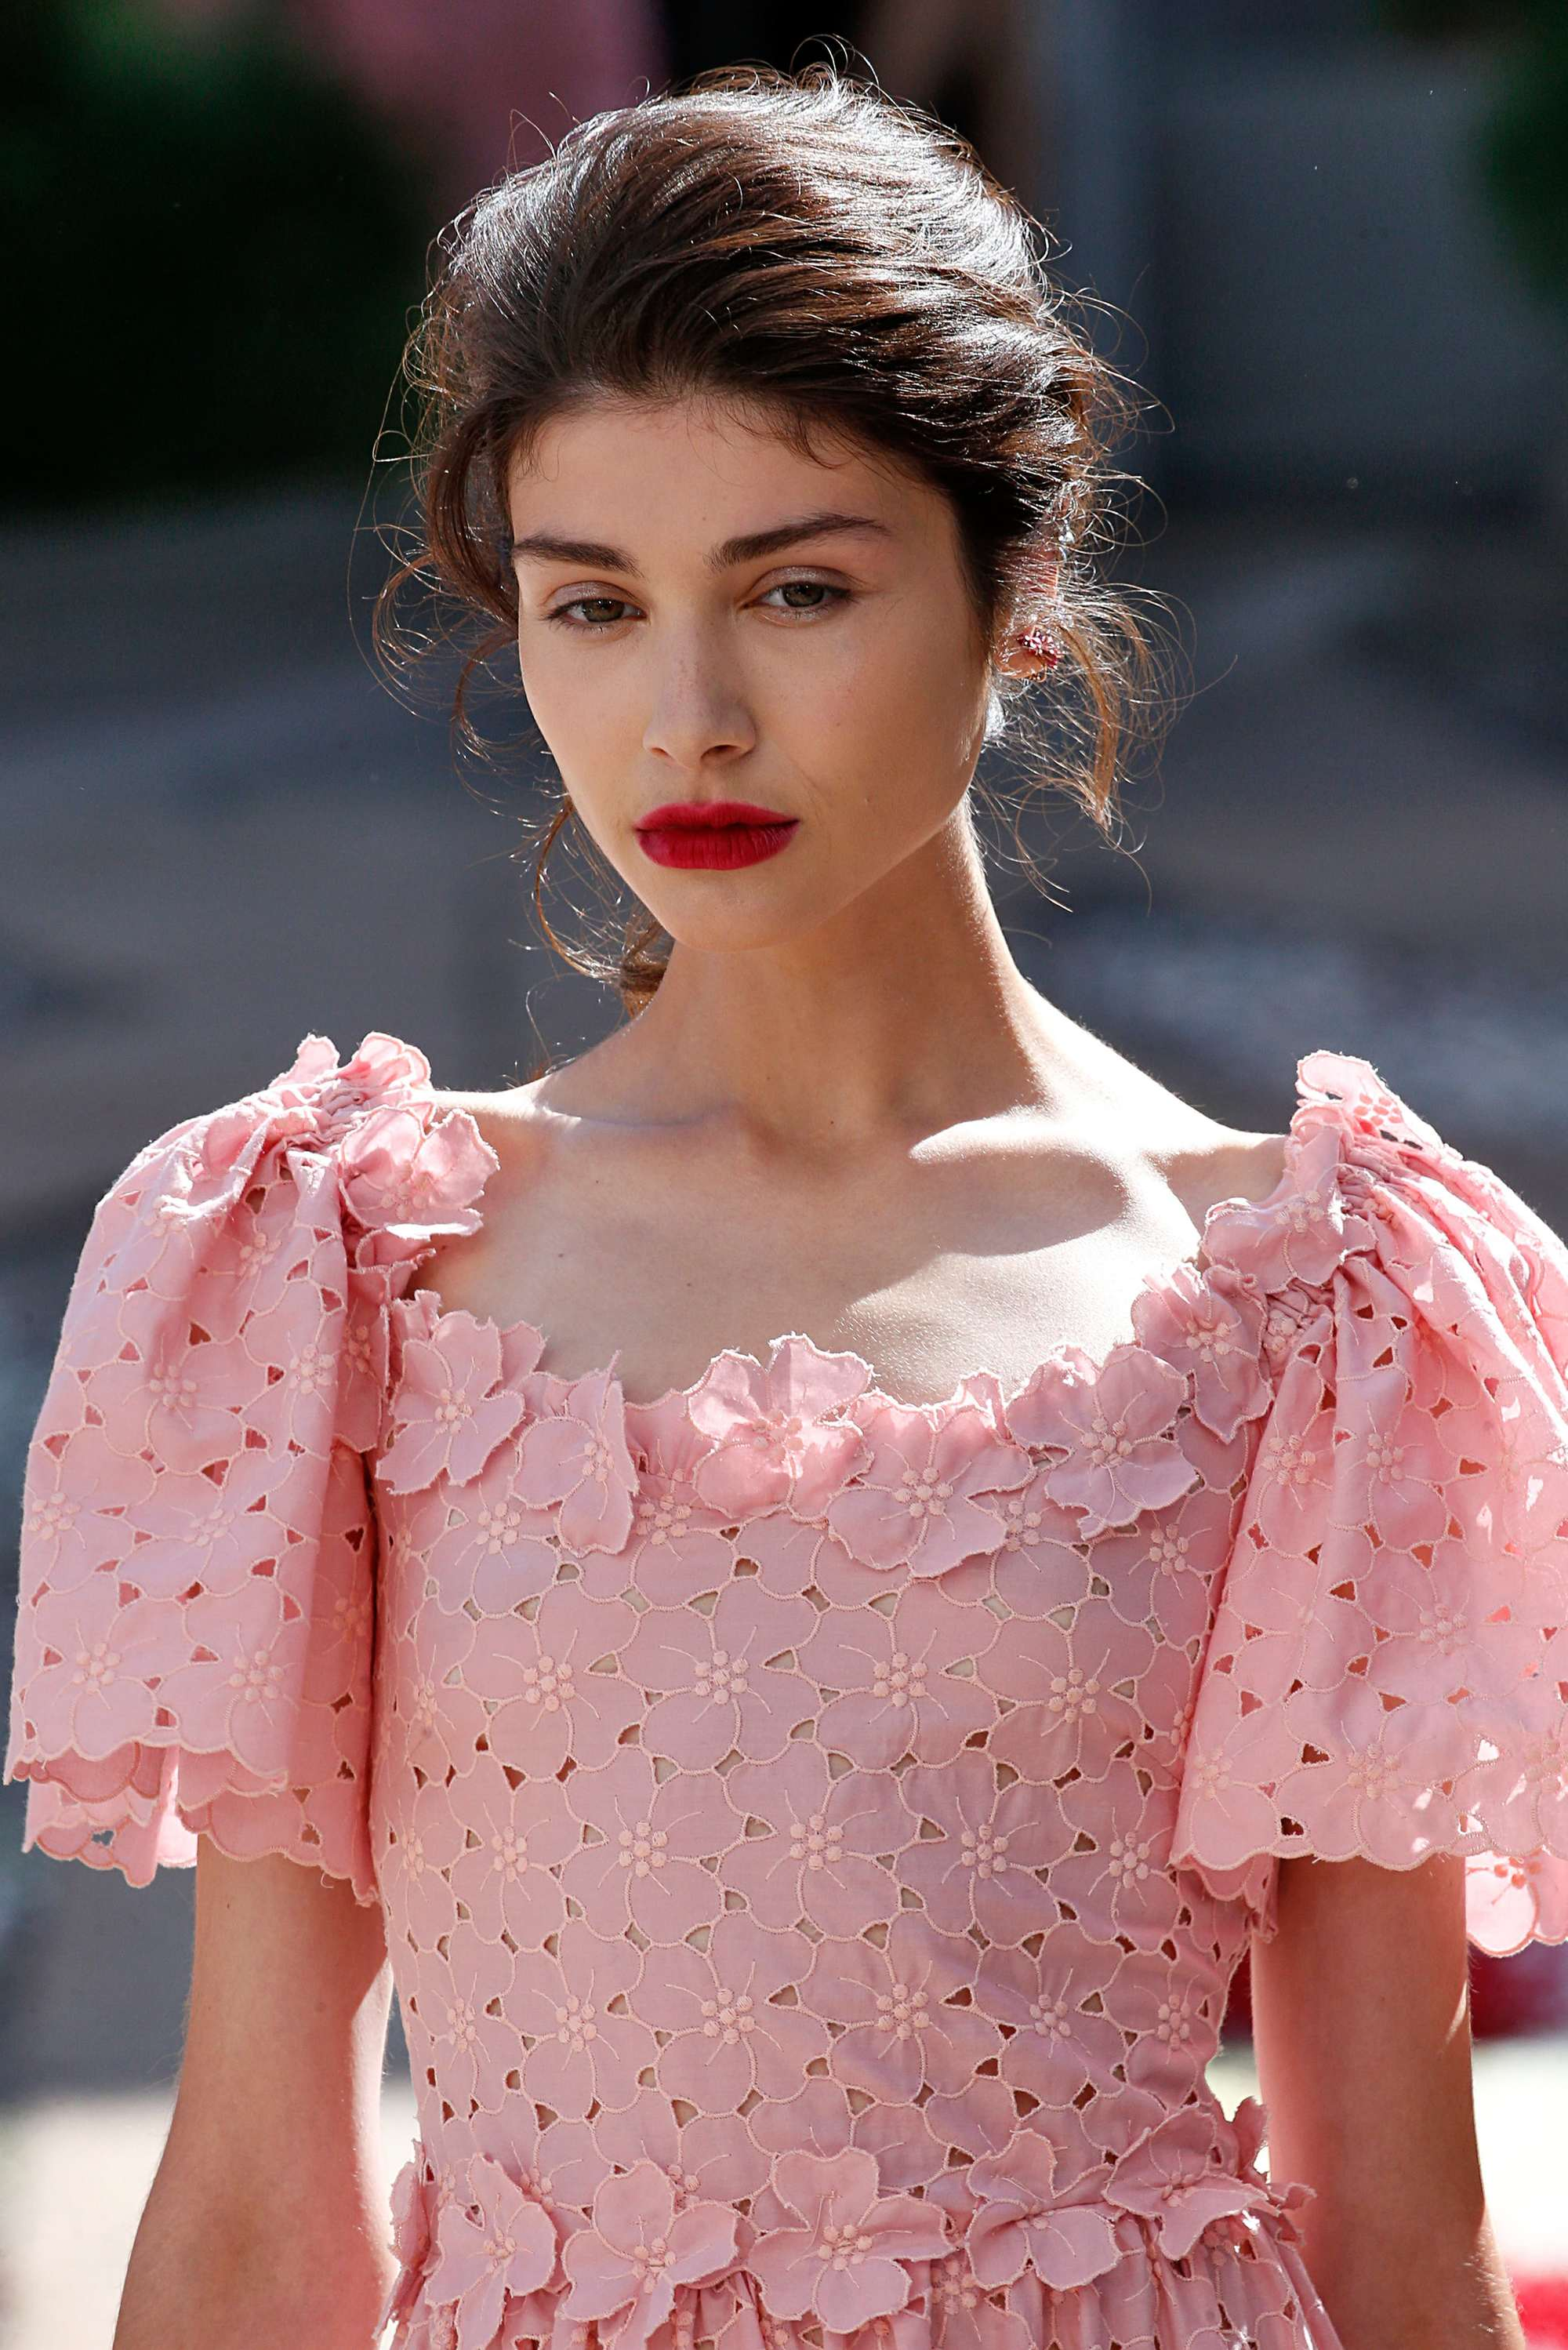 close up shot of model with messy updo hairstyle, wearing all pink and posing outside